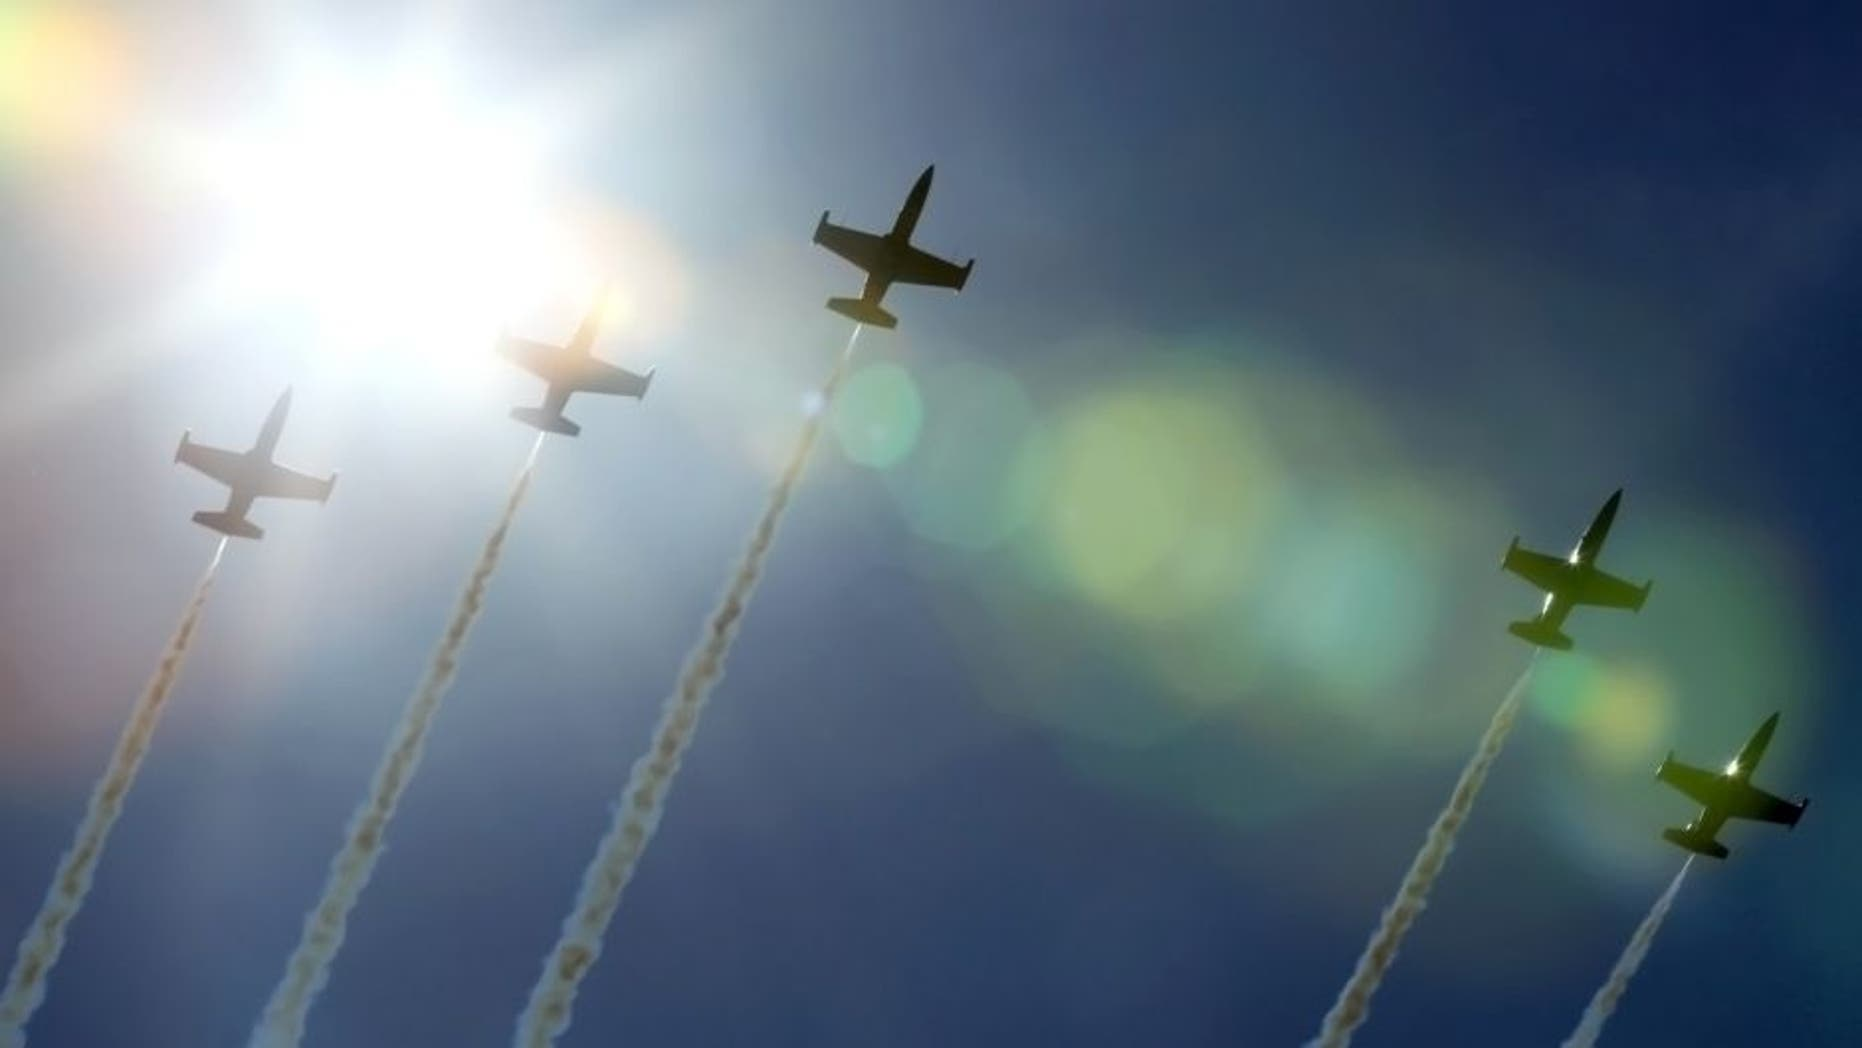 Jets from the Breitling Jet Team, made up of seven L-39C Albatros aircraft, fly over Gary, Ind., on Thursday, Aug. 13, 2015, amid practice for the Chicago Air and Water Show. (Antonio Perez/Chicago Tribune/TNS via Getty Images)